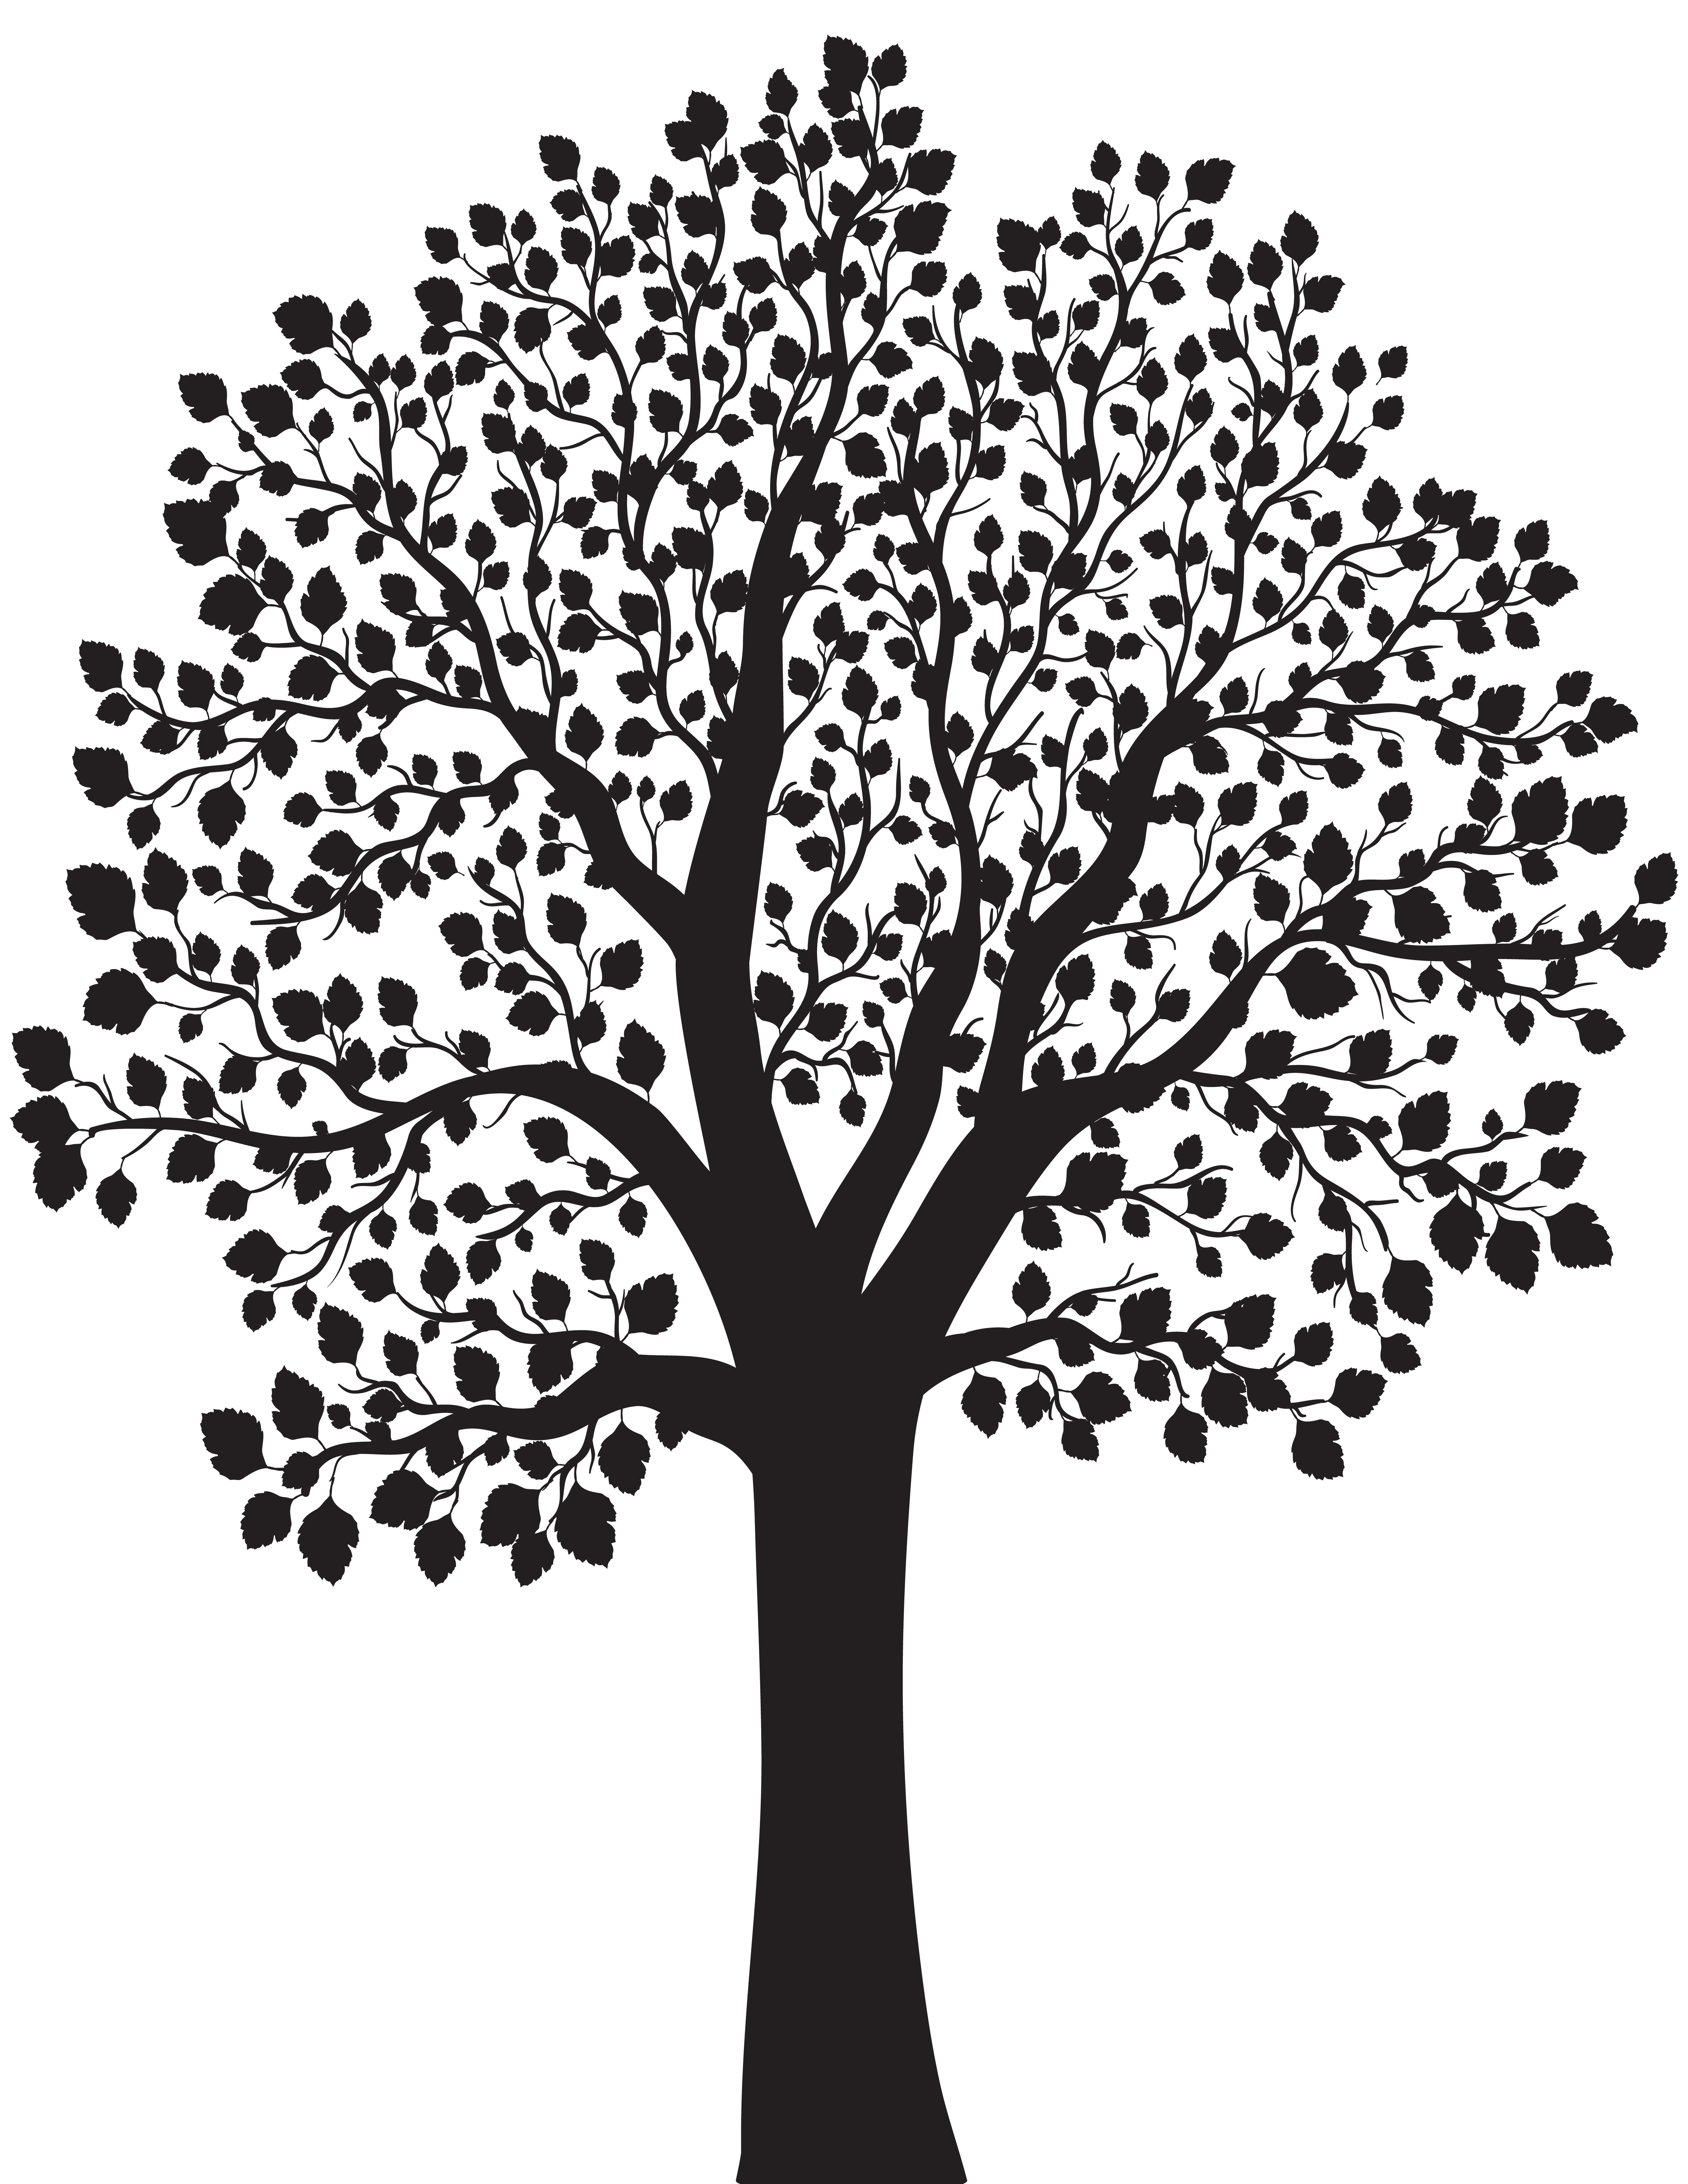 Tree png clip art. Clipart fruit silhouette